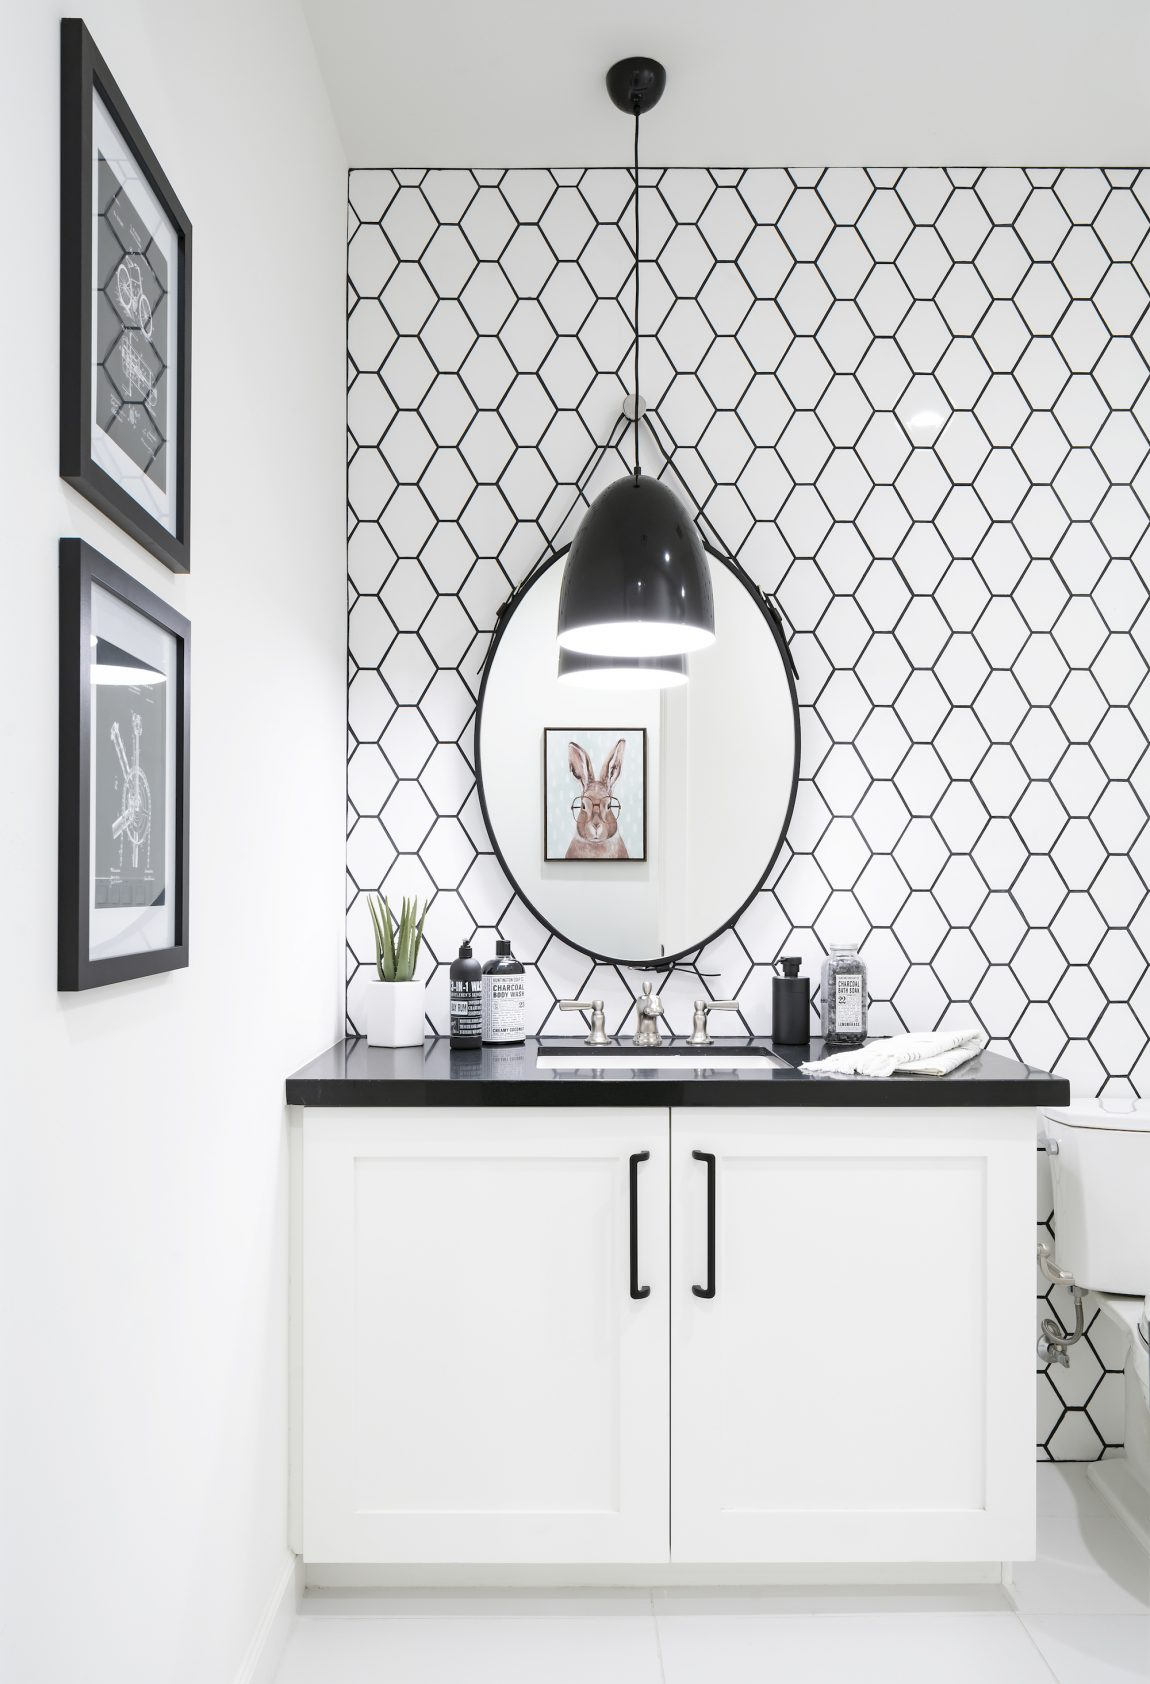 Modern Bathroom with Black and White Backsplash